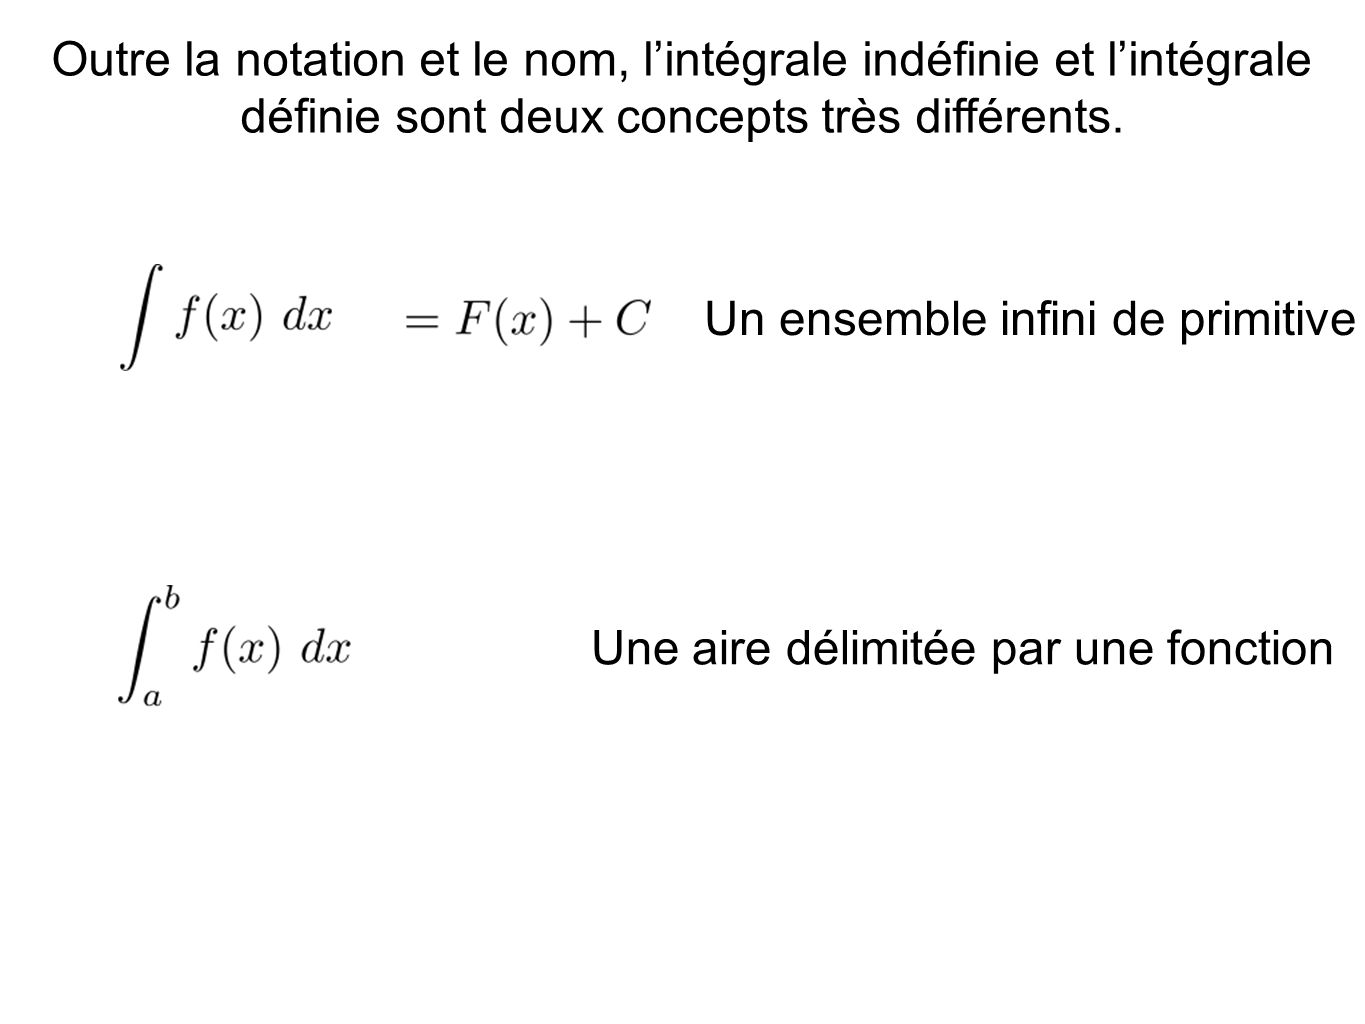 Un ensemble infini de primitive